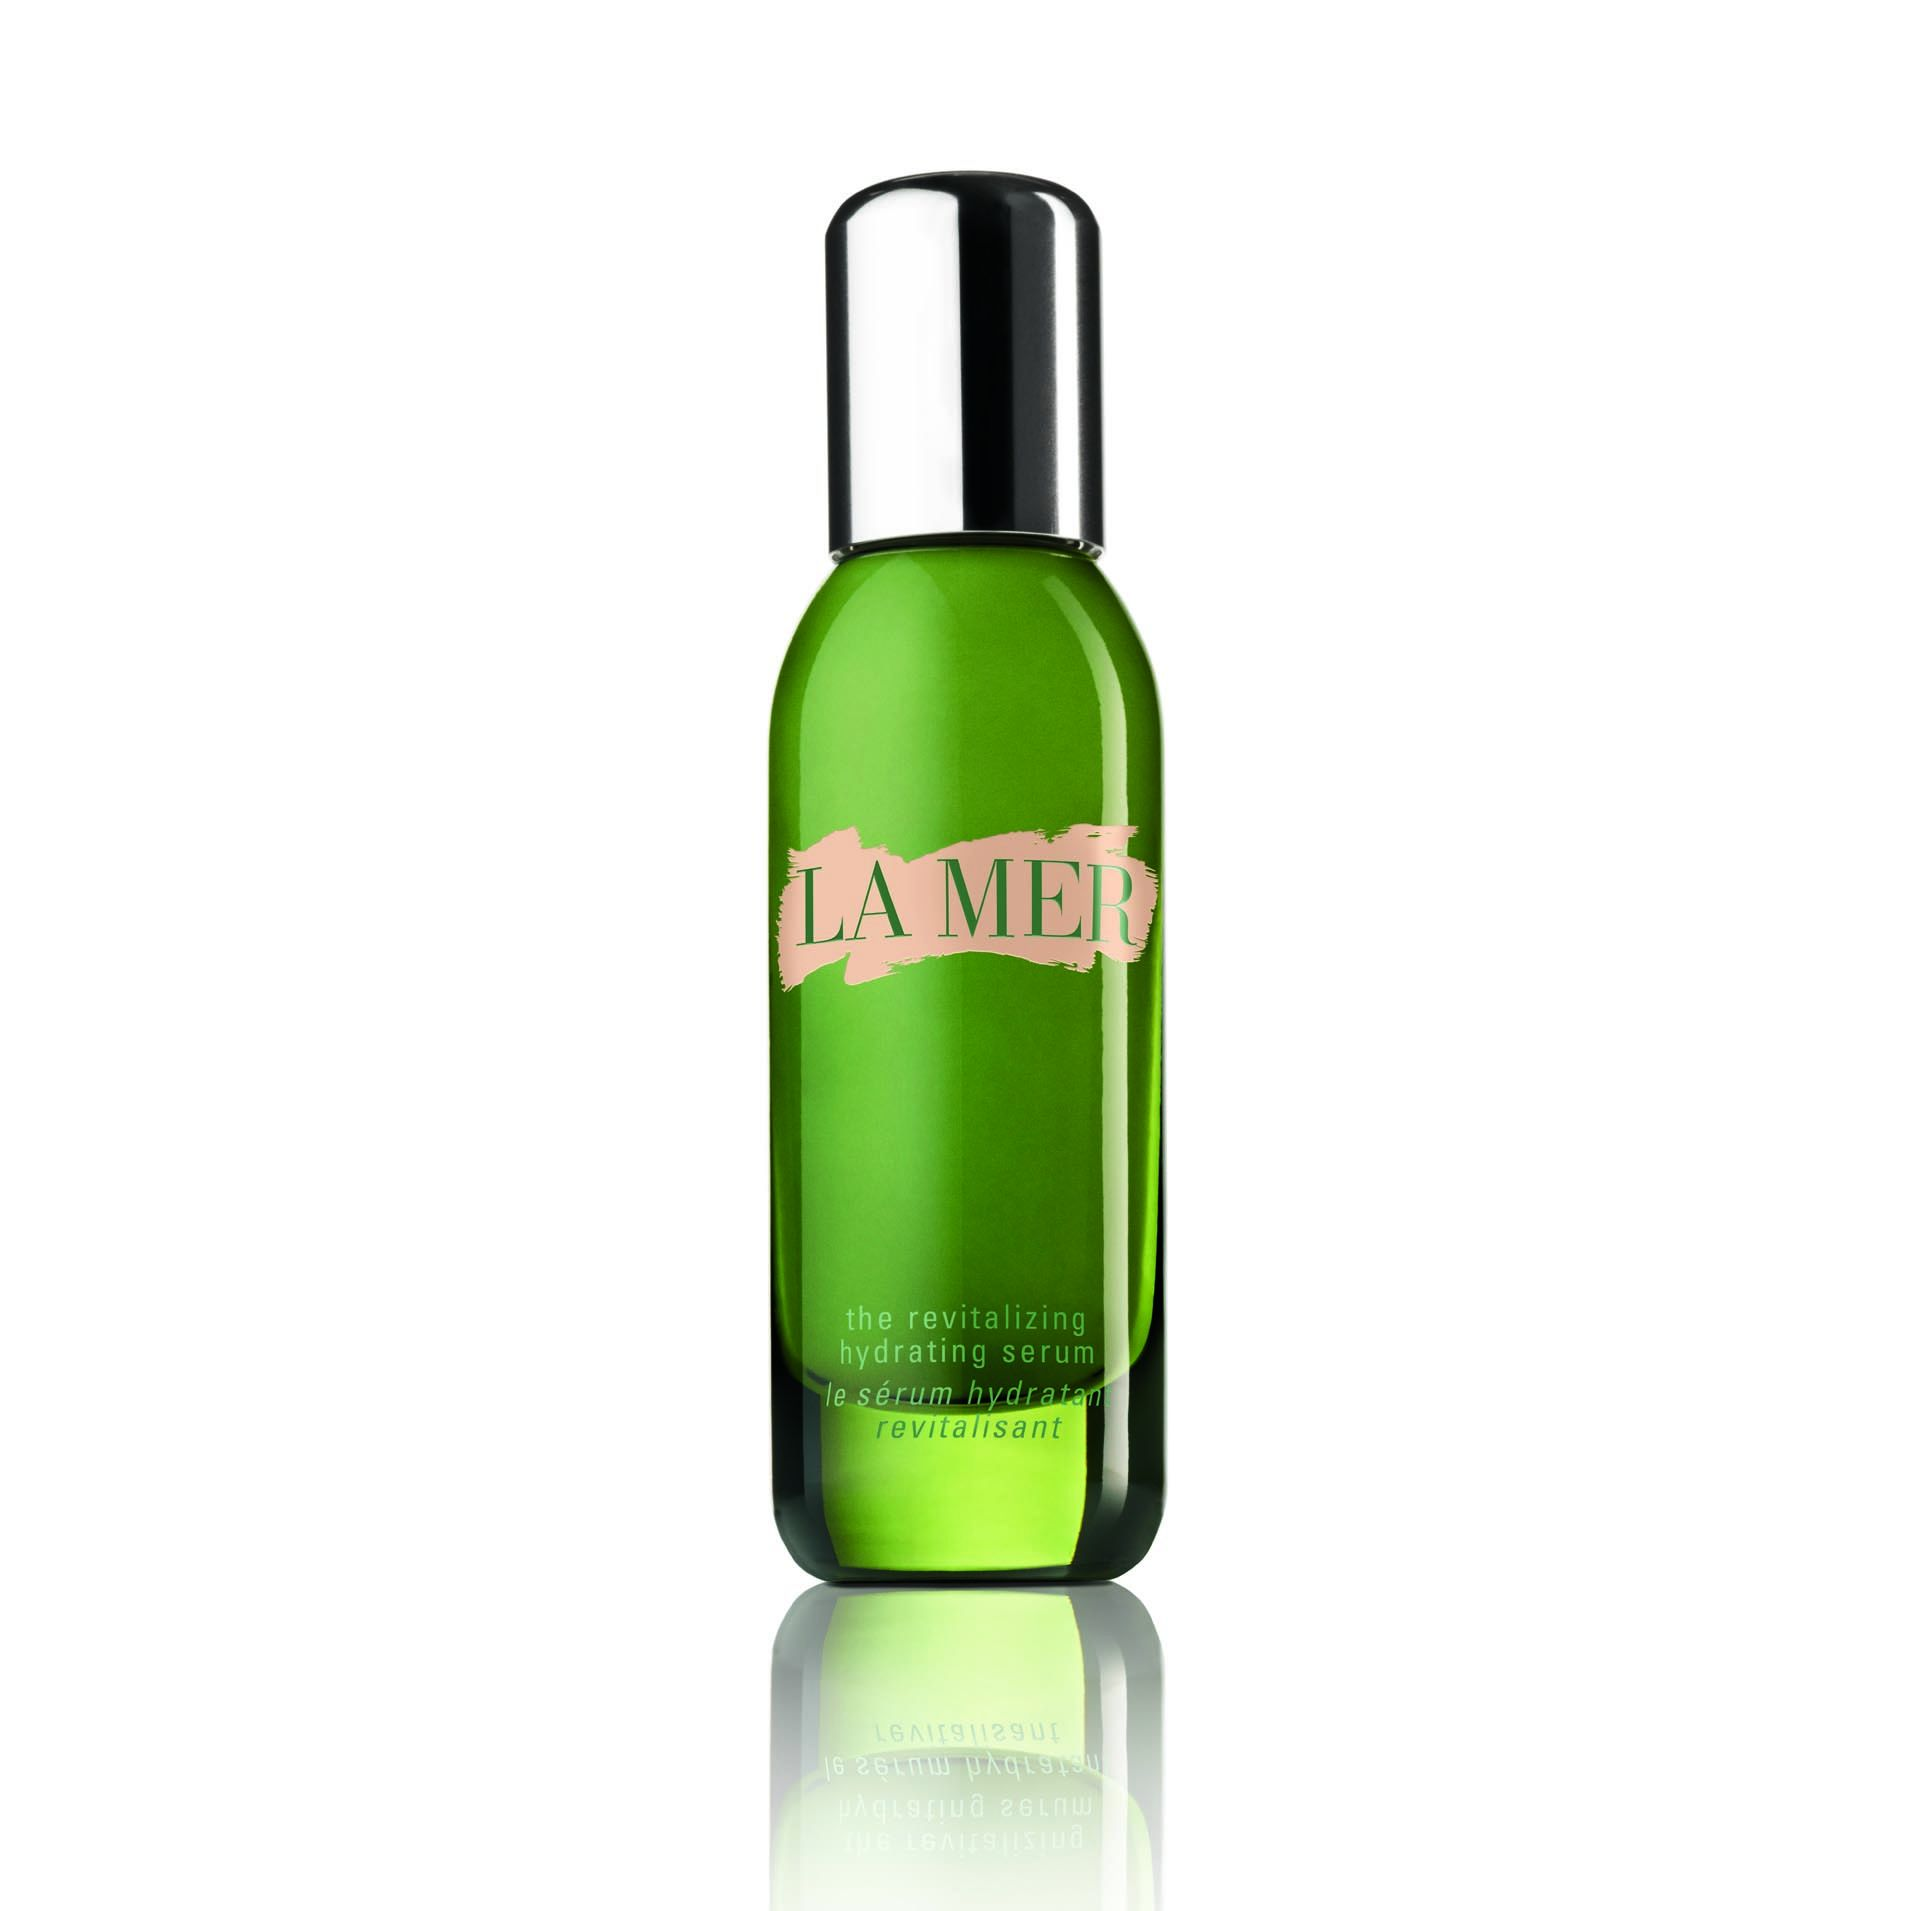 La Mer Introduces The Revitalizing Hydrating Serum